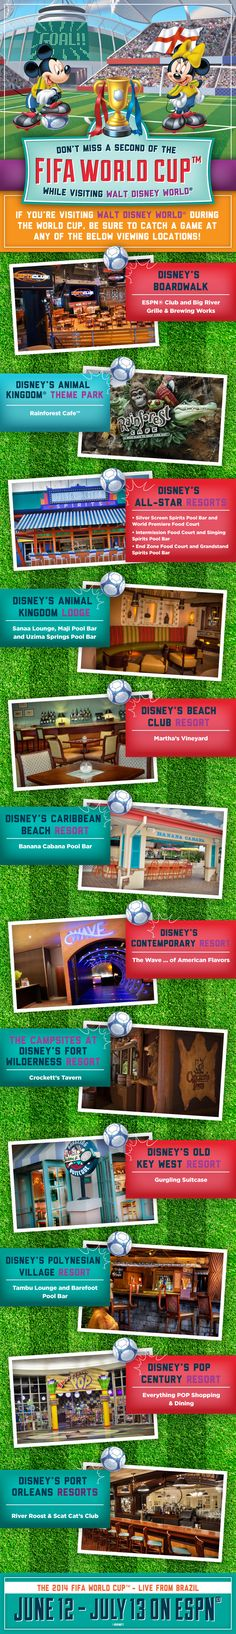 Check out where you can watch the 2014 FIFA World Cup on ESPN during your Walt Disney World vacation! #soccer #tips #tricks